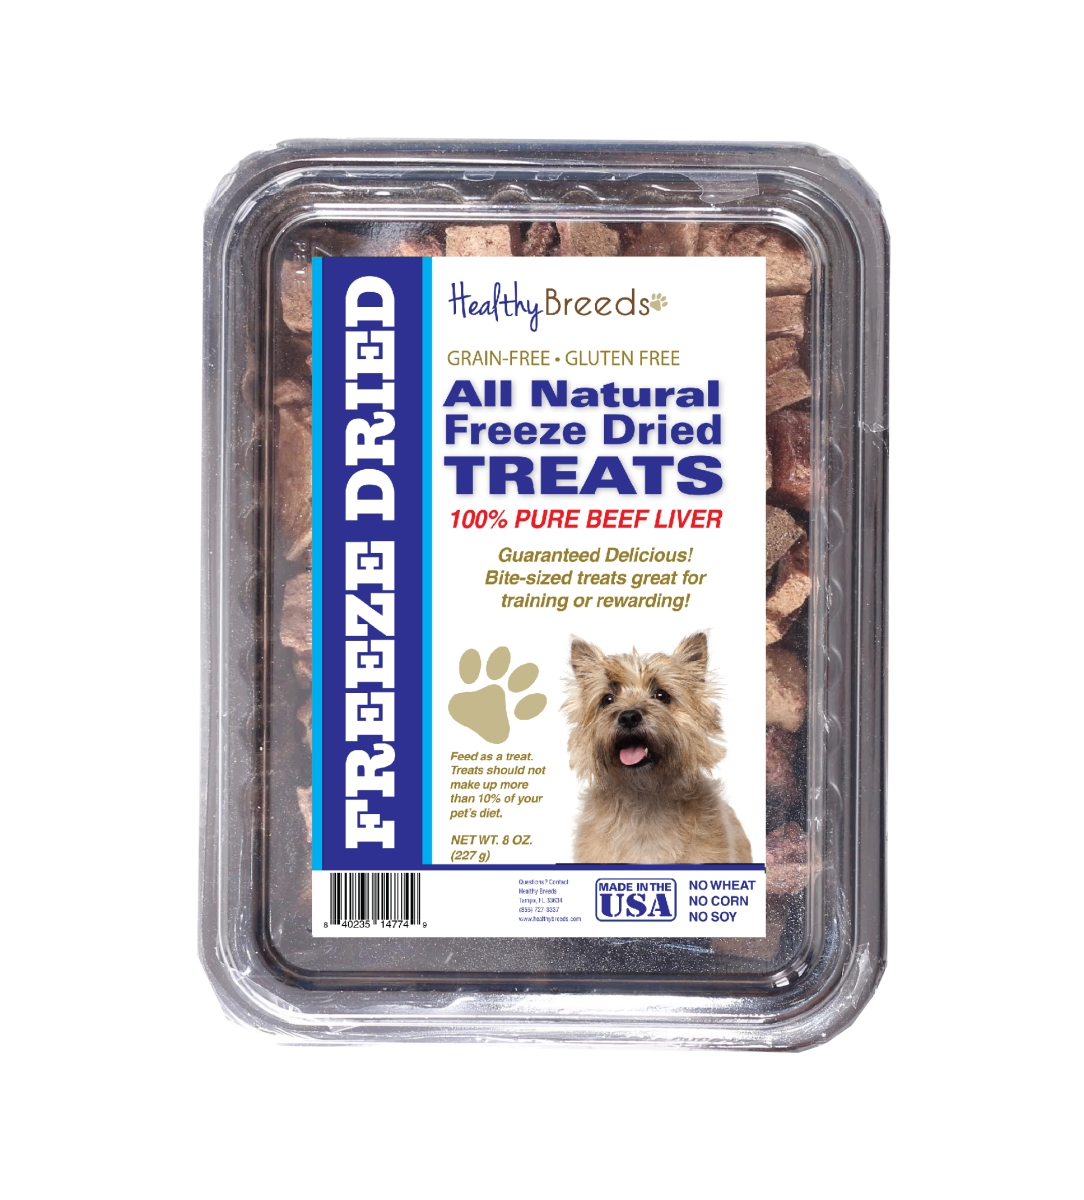 Healthy Breeds 840235148395 10 oz Cairn Terrier All Natural Freeze Dried Treats Beef Liver